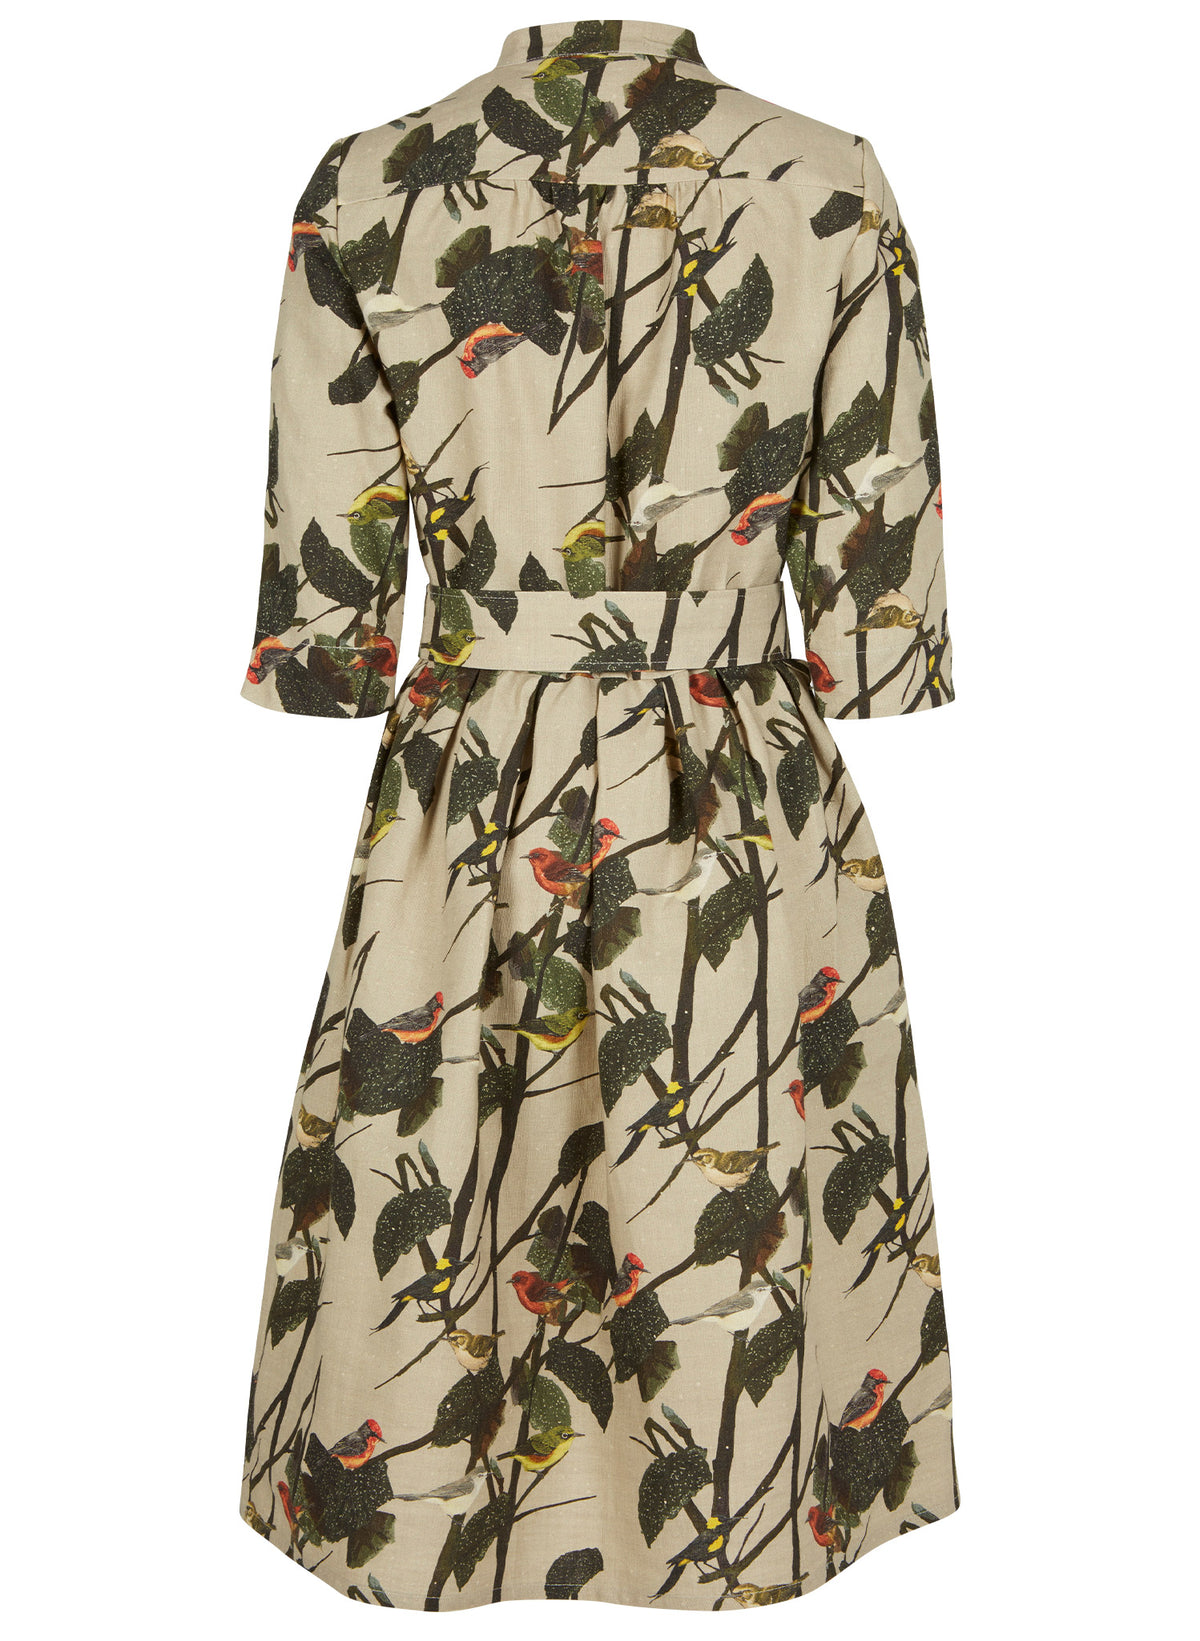 PALAVA - Cynthia Dress (Natural Forgotten Birds)